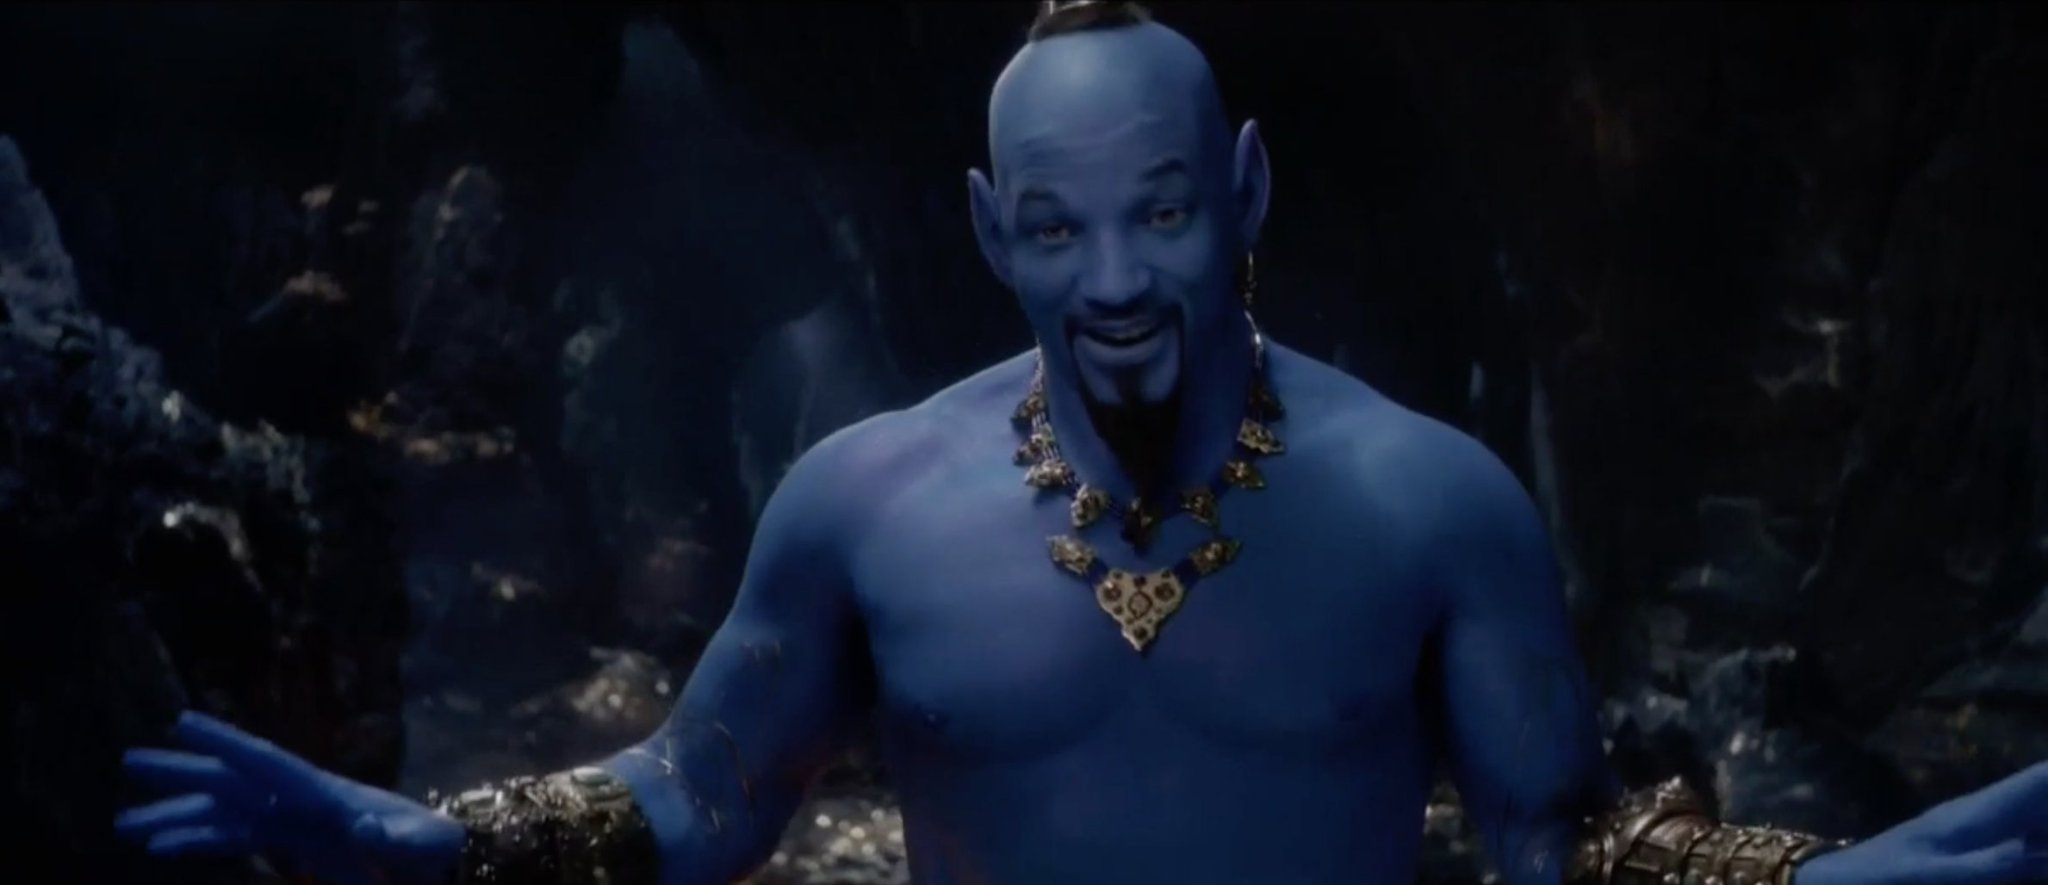 Disney's #Aladdin trailer gives the first look at Will Smith as Genie https://t.co/mOJAgNDPSY https://t.co/MxVtXvVFkG